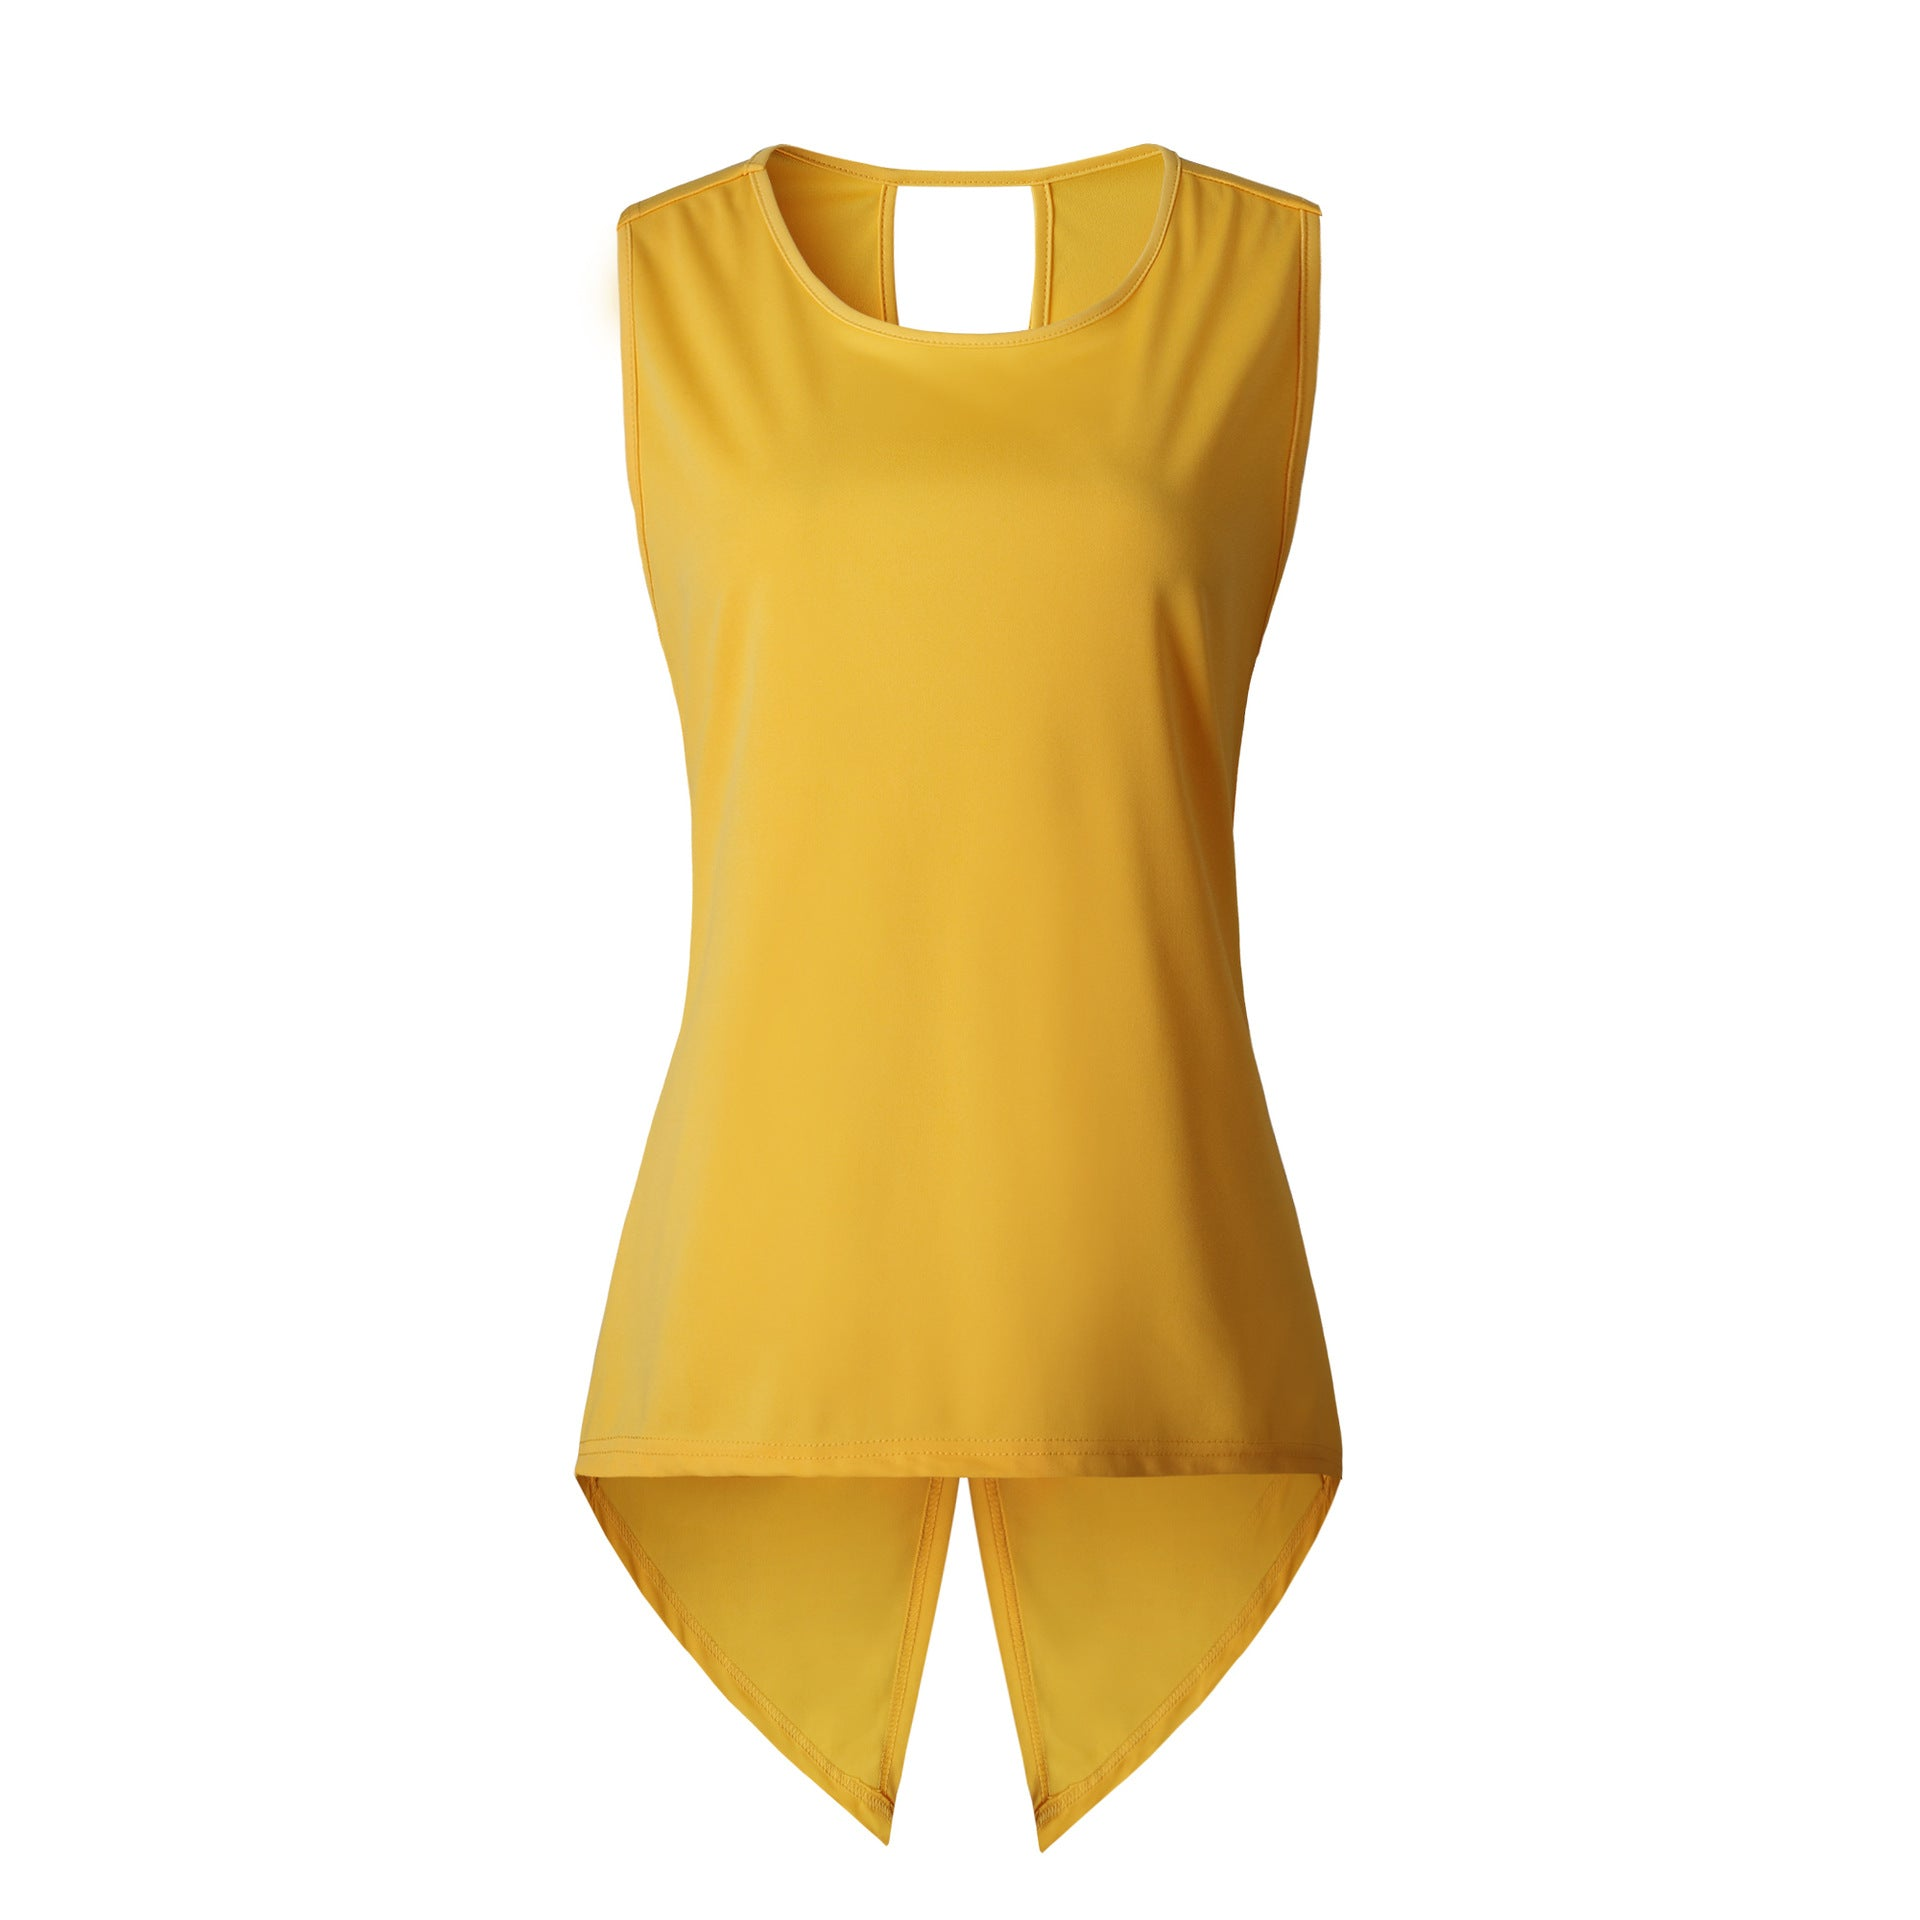 Sleeveless irregular Top, top, VIVIMARKS